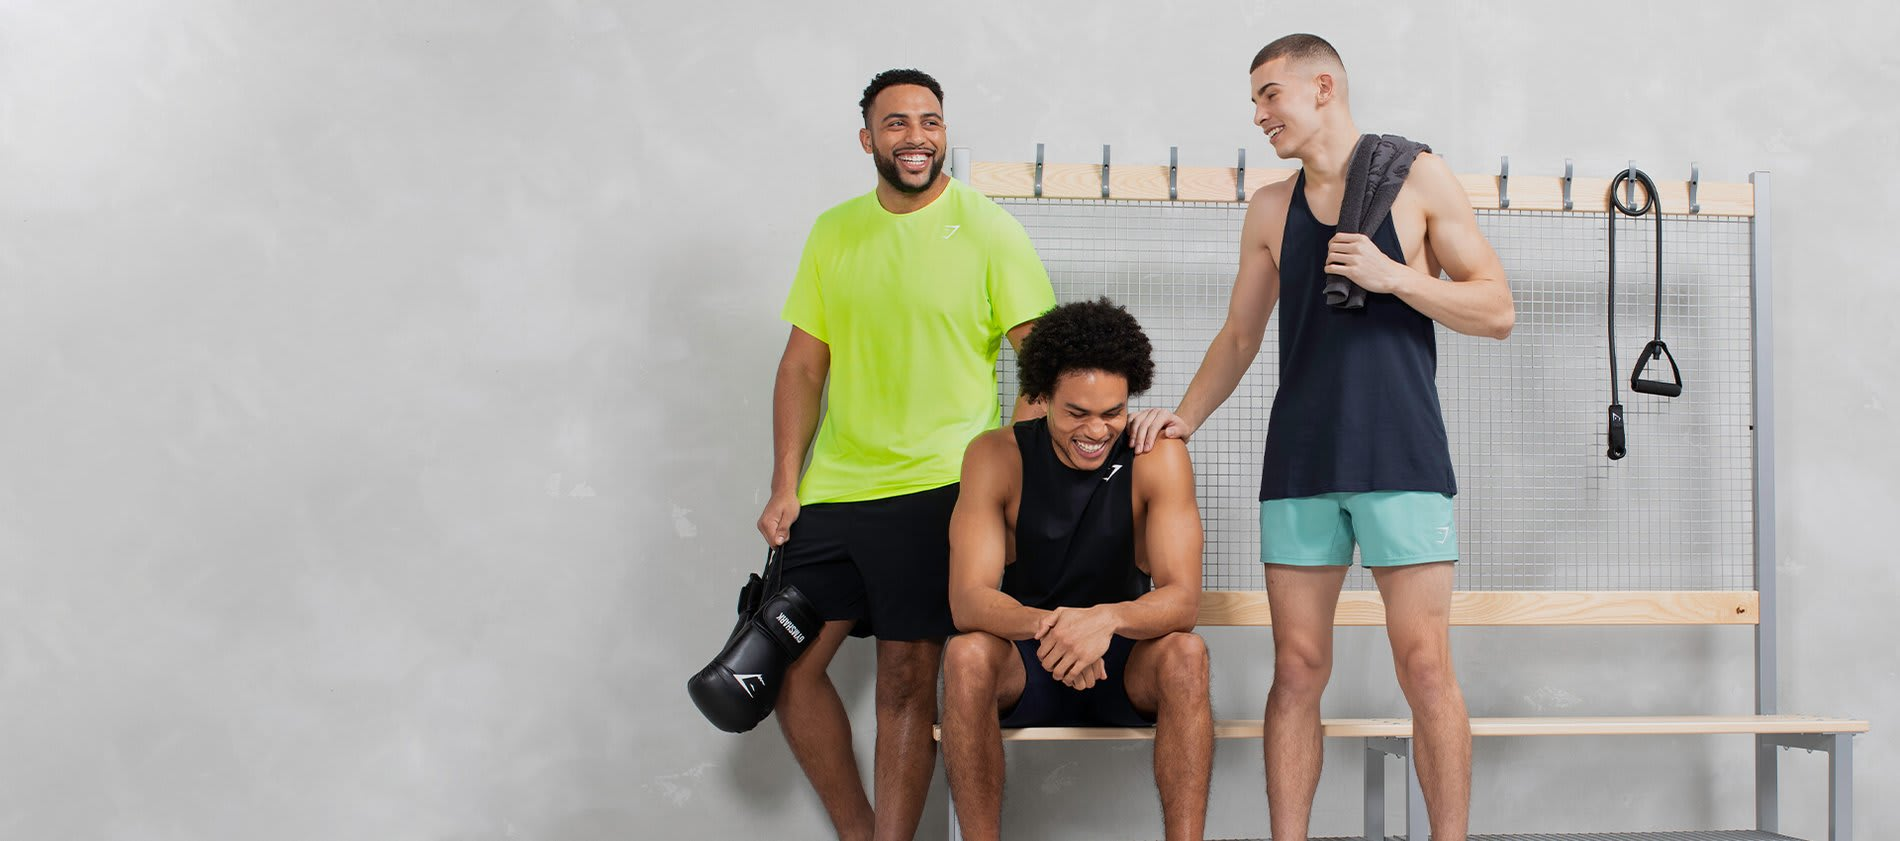 Three male models laughing together pose in a bright locker room wearing the Gymshark Essentials collection.